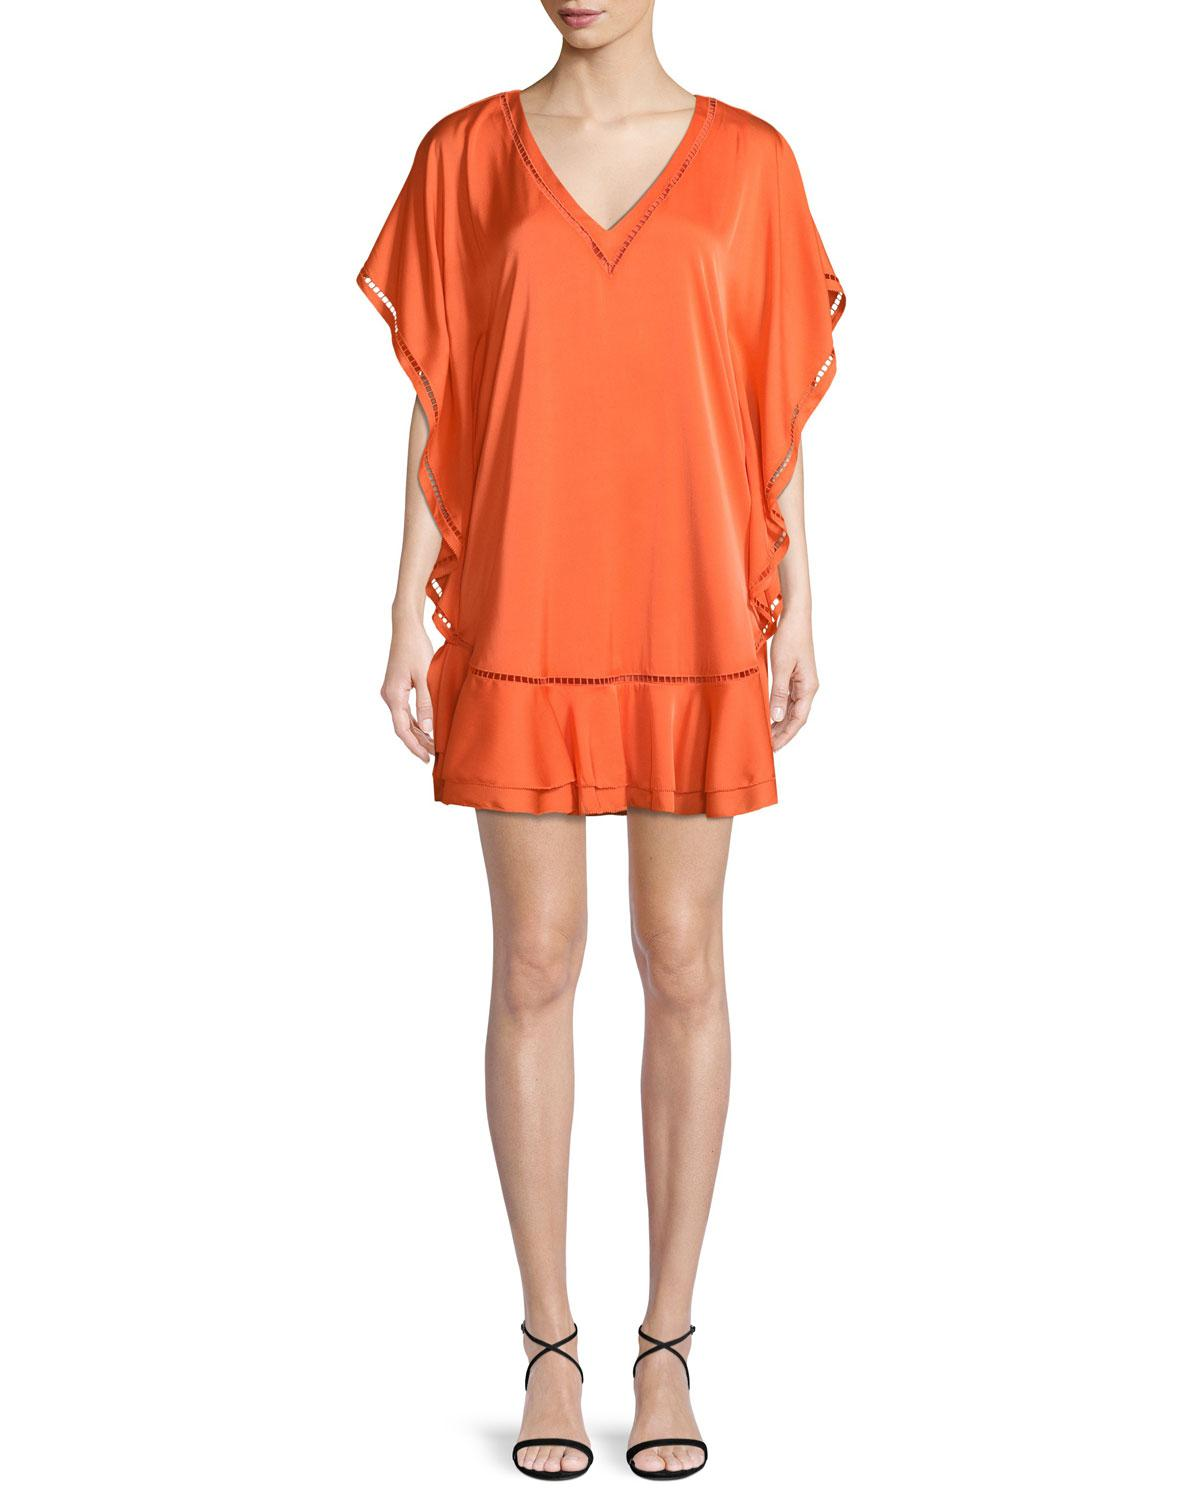 1ada01f90 Trina Turk Roca V-neck Ruffled Dress in Orange - Lyst